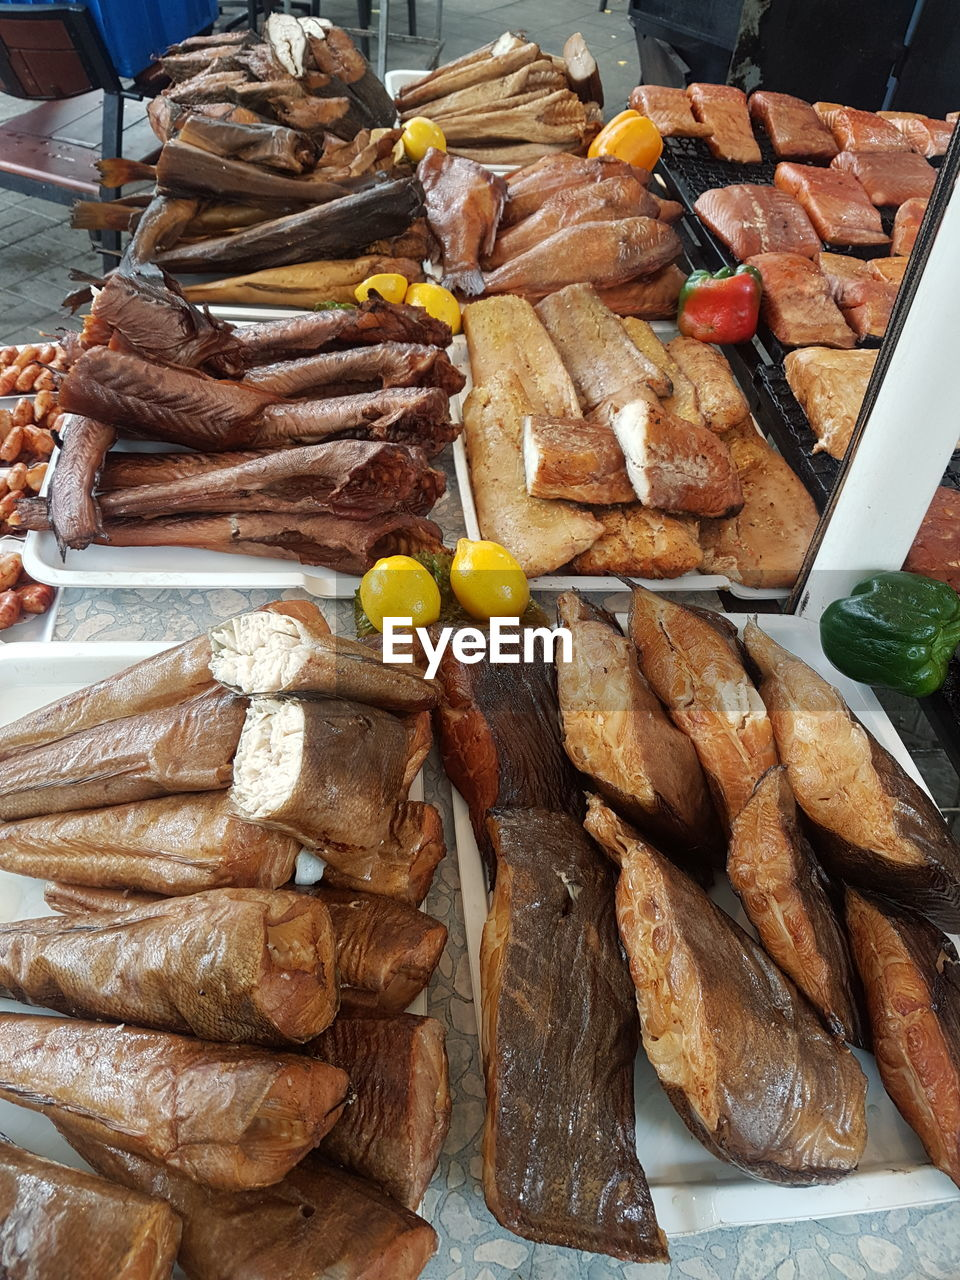 food, food and drink, freshness, meat, healthy eating, wellbeing, ready-to-eat, still life, close-up, no people, choice, for sale, retail, indoors, high angle view, bread, business, market, fish, abundance